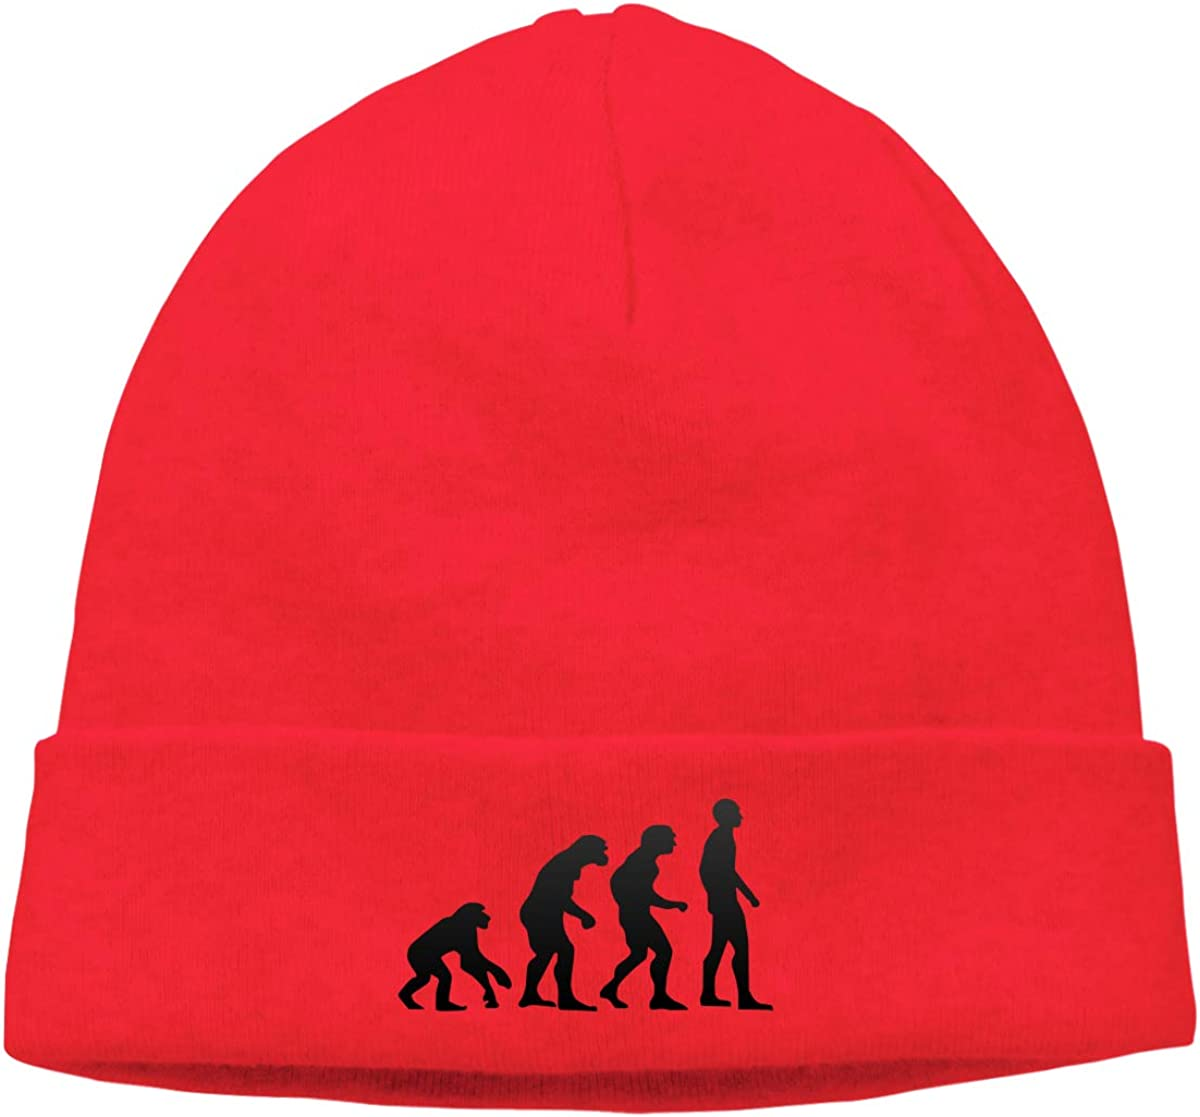 njsdi Evolution Men /& Women Stretchy /& Soft Knit Hat Cap